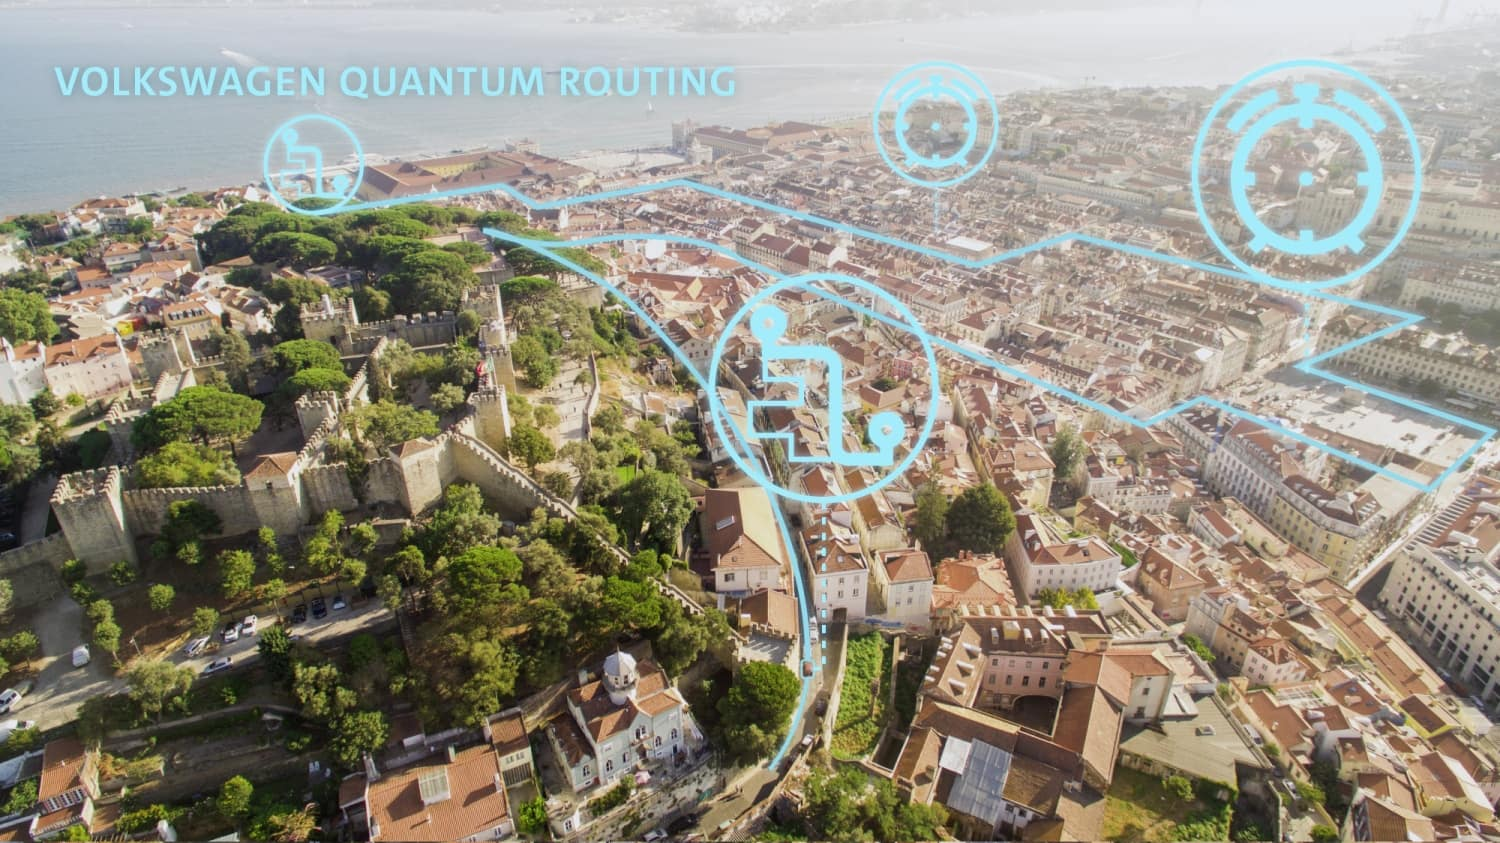 In Lisbon, Volkswagen is launching the world's first pilot project for traffic optimization with a quantum computer.